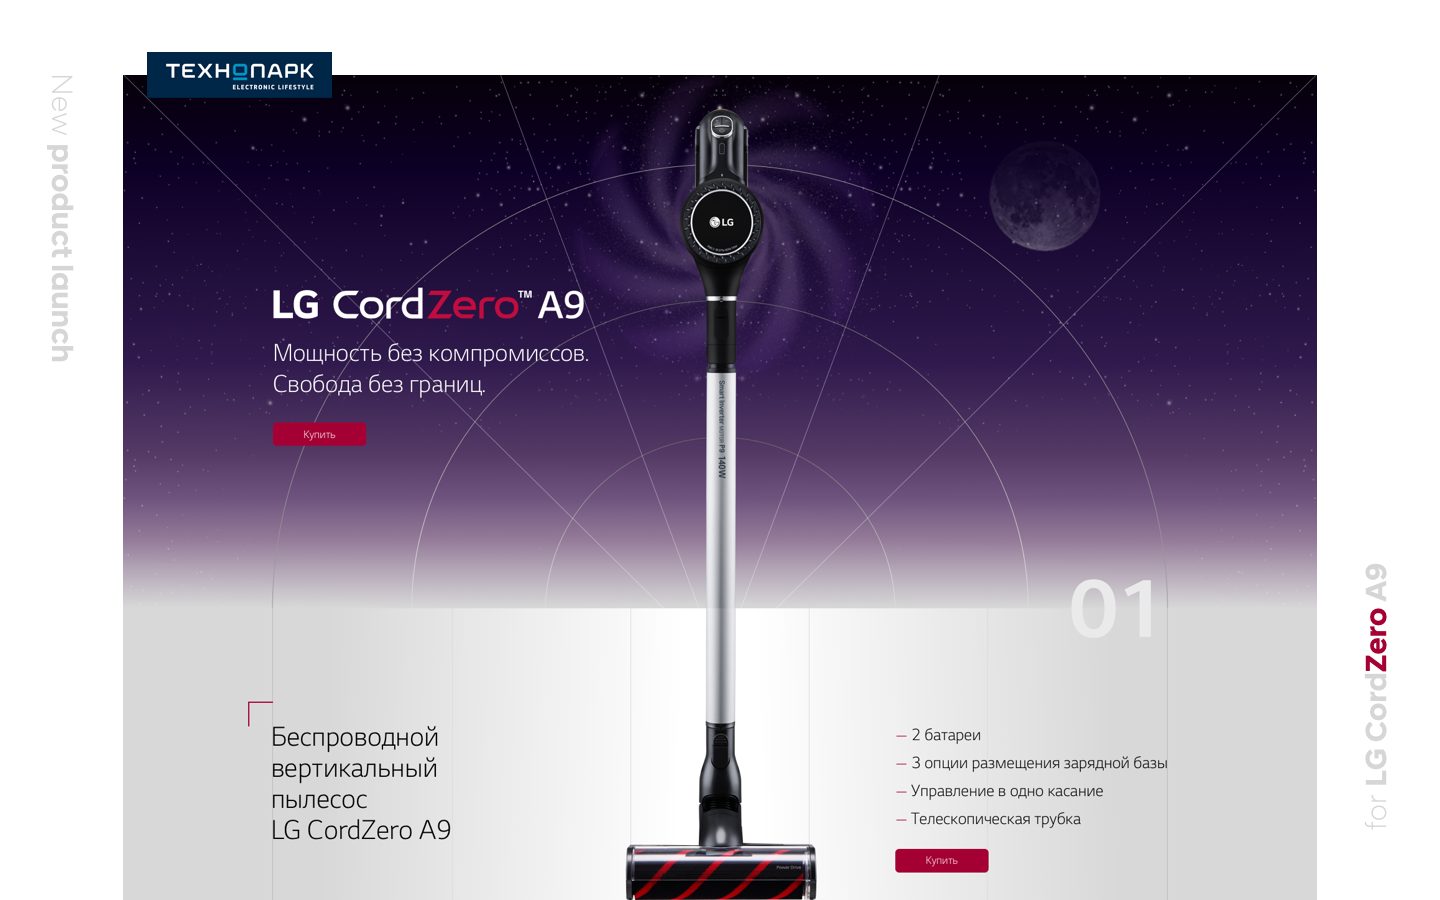 New product launch for LG Cordzero A9